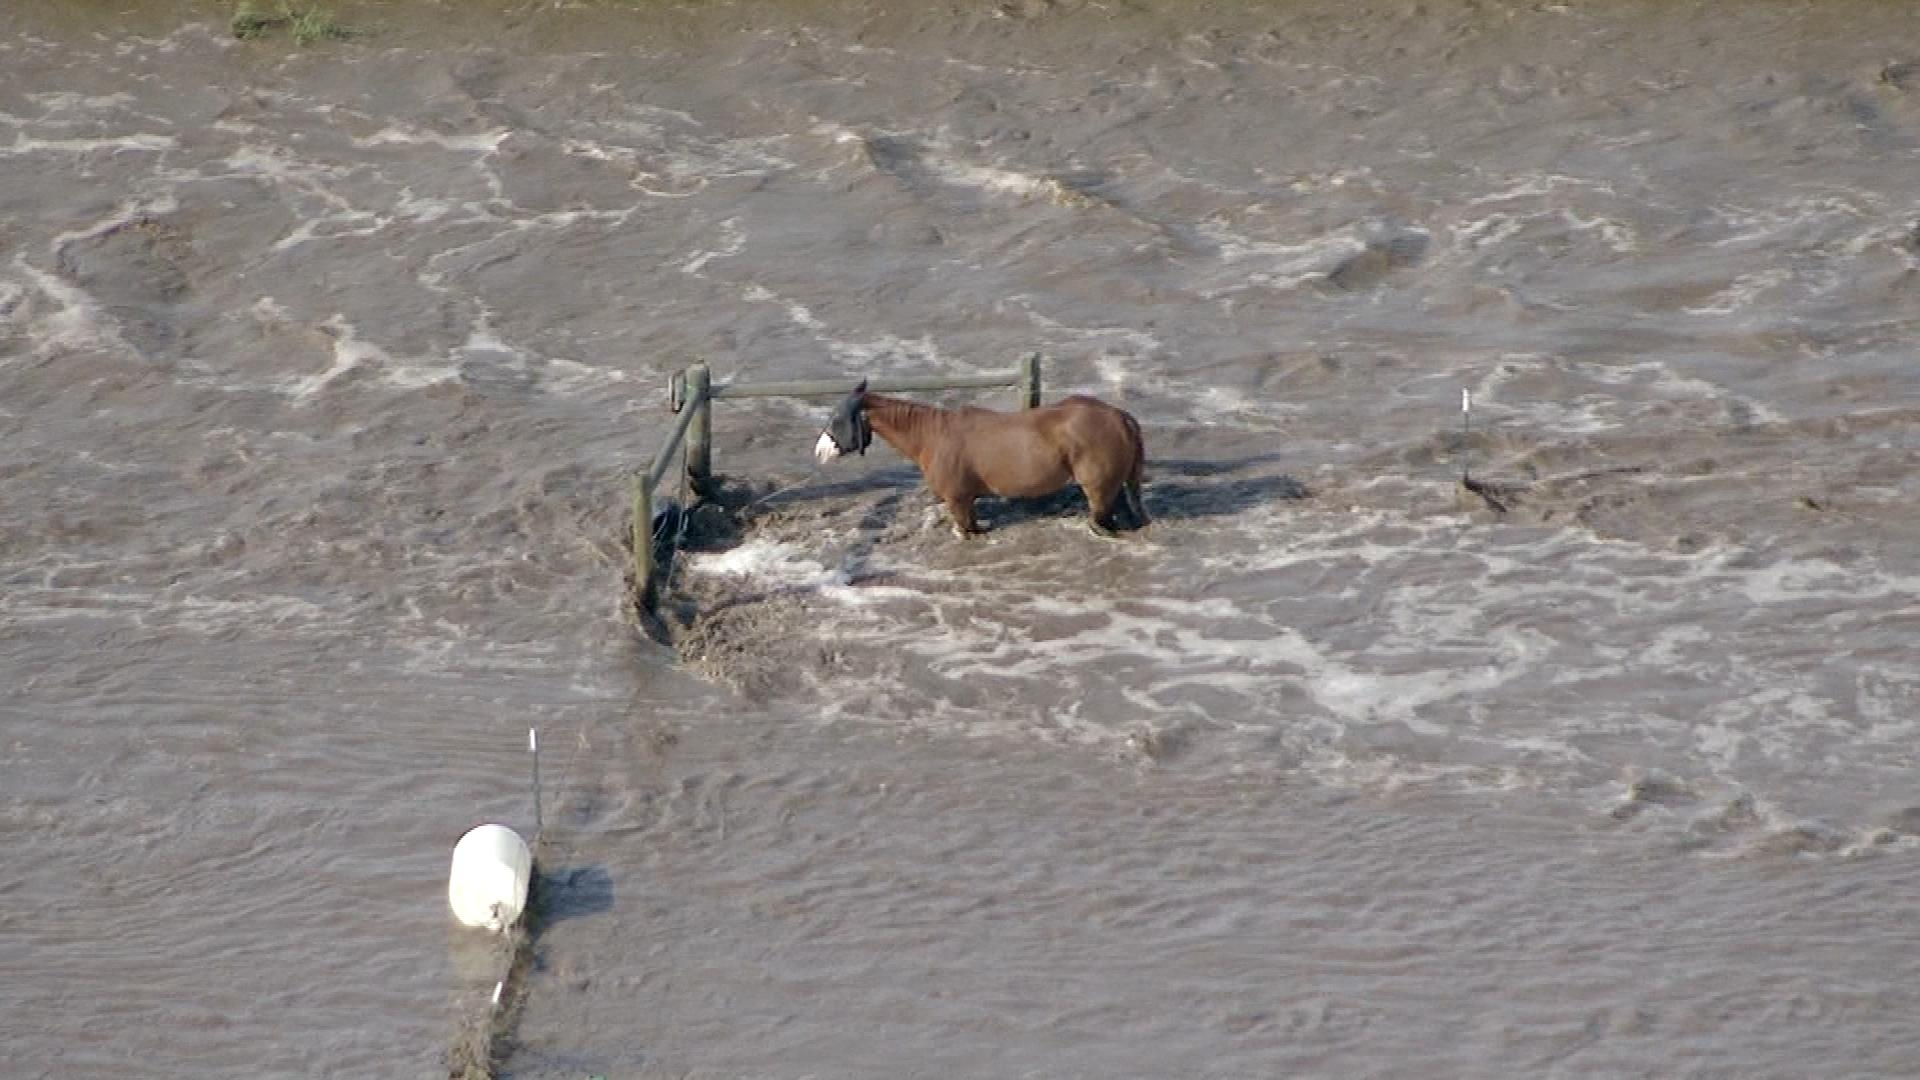 A horse stranded on a farm in Weld County (credit: CBS)